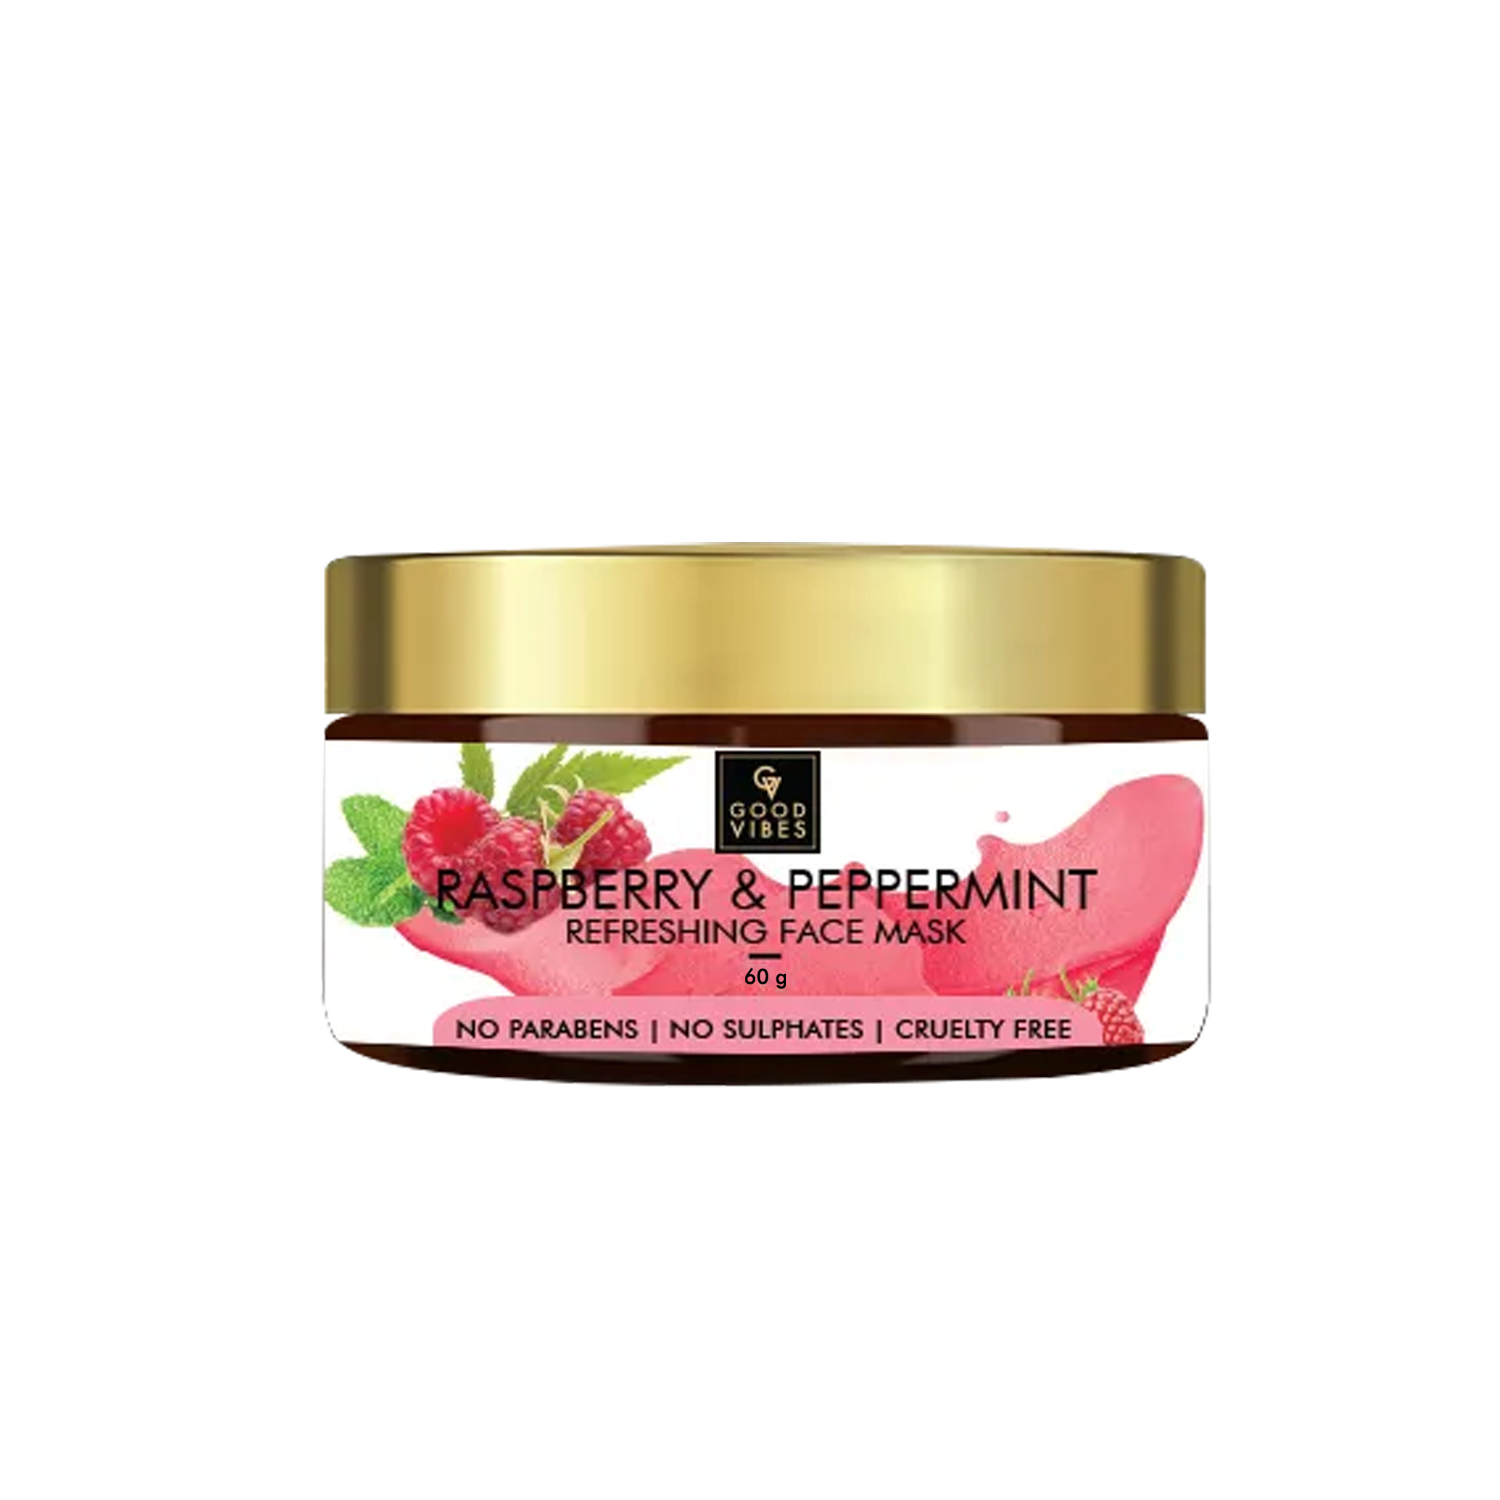 Good Vibes | Good Vibes Refreshing Face Mask - Raspberry & Peppermint (60 g)